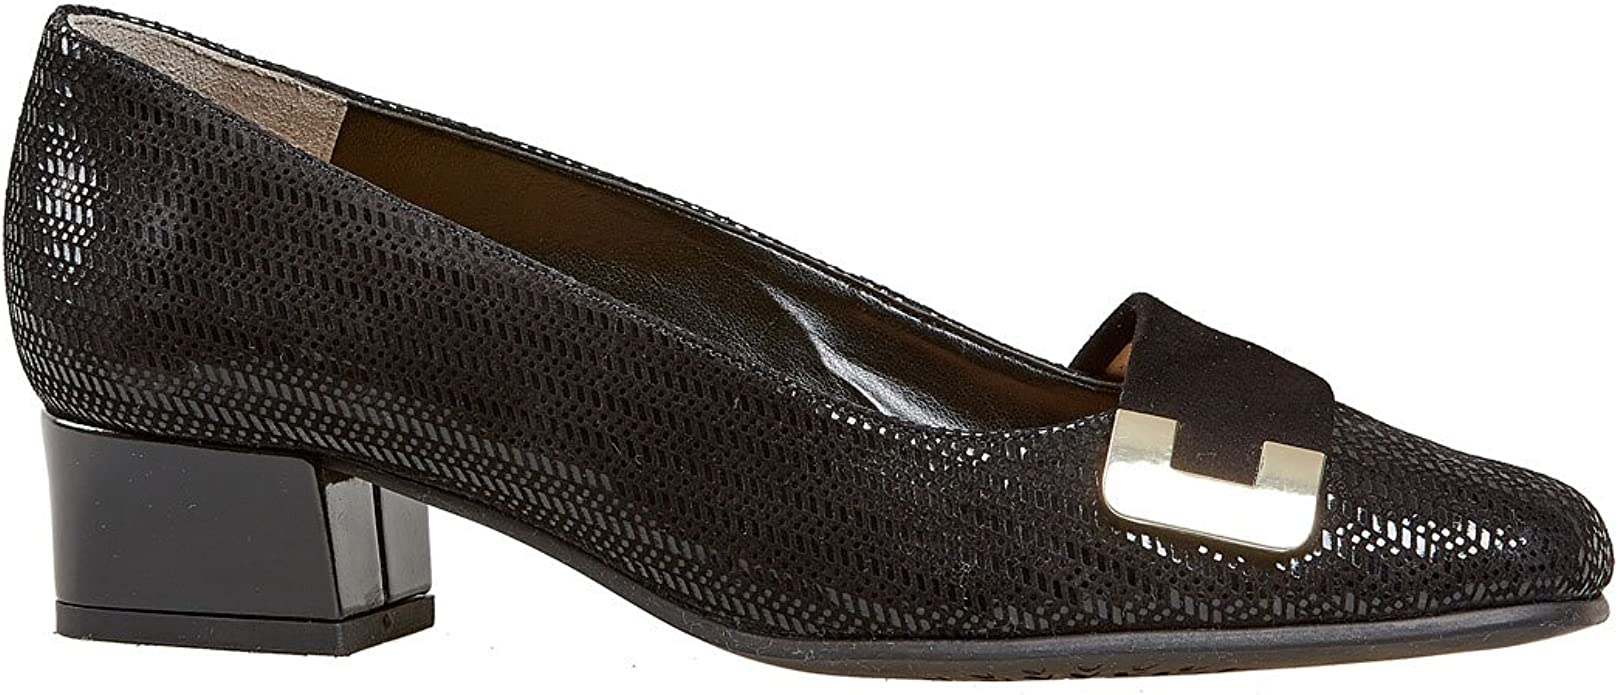 Van Dal Shoes Womens Duchess Courts in